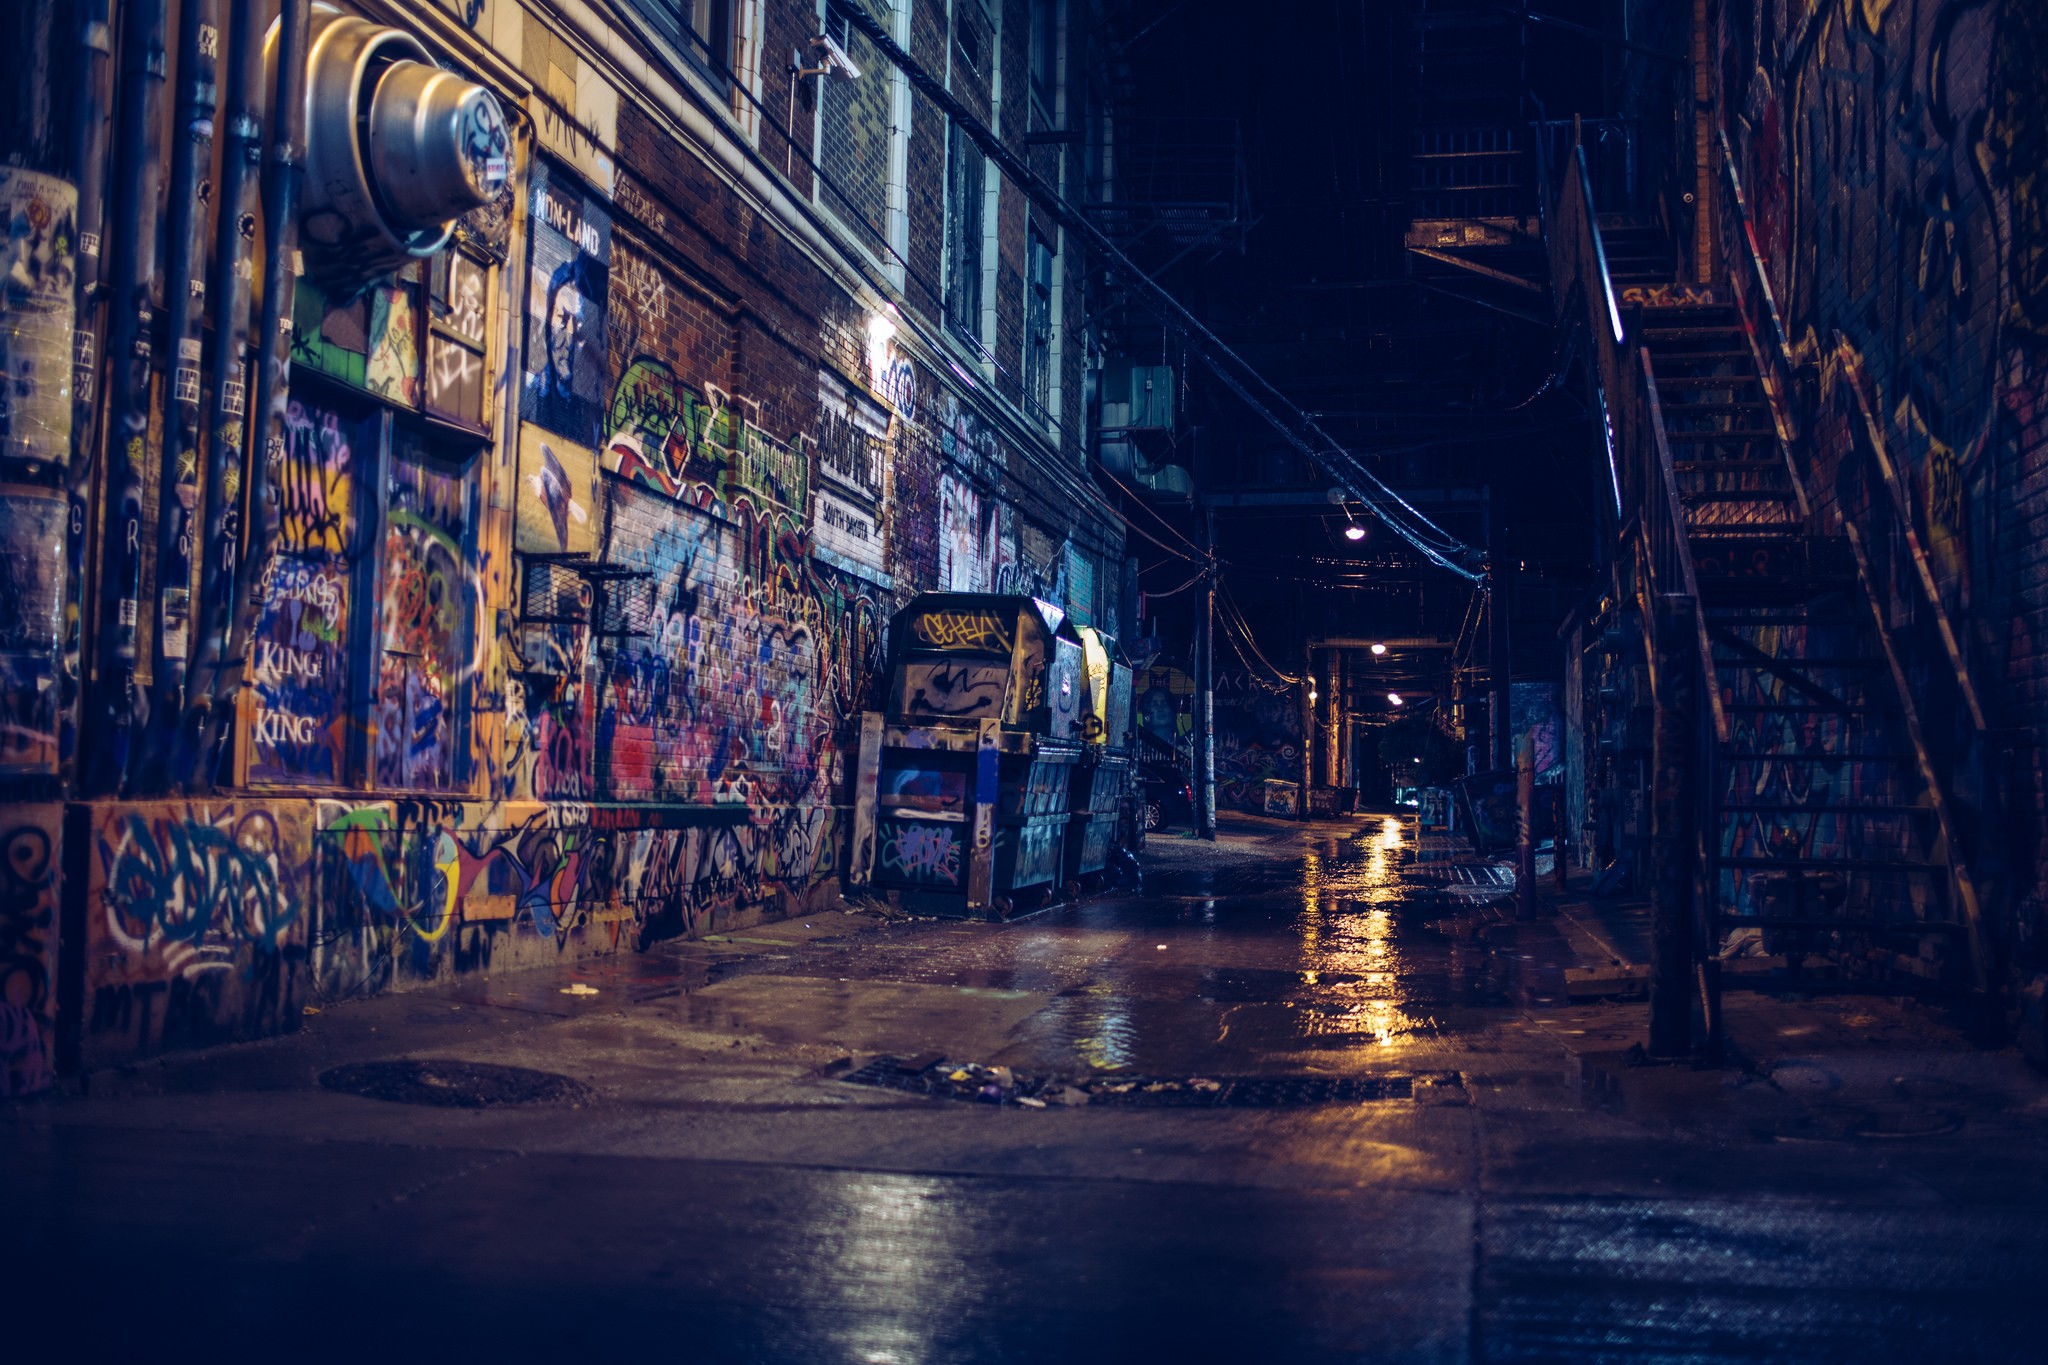 General 2048x1365 photography street alleyway city night graffiti reflection building stairs